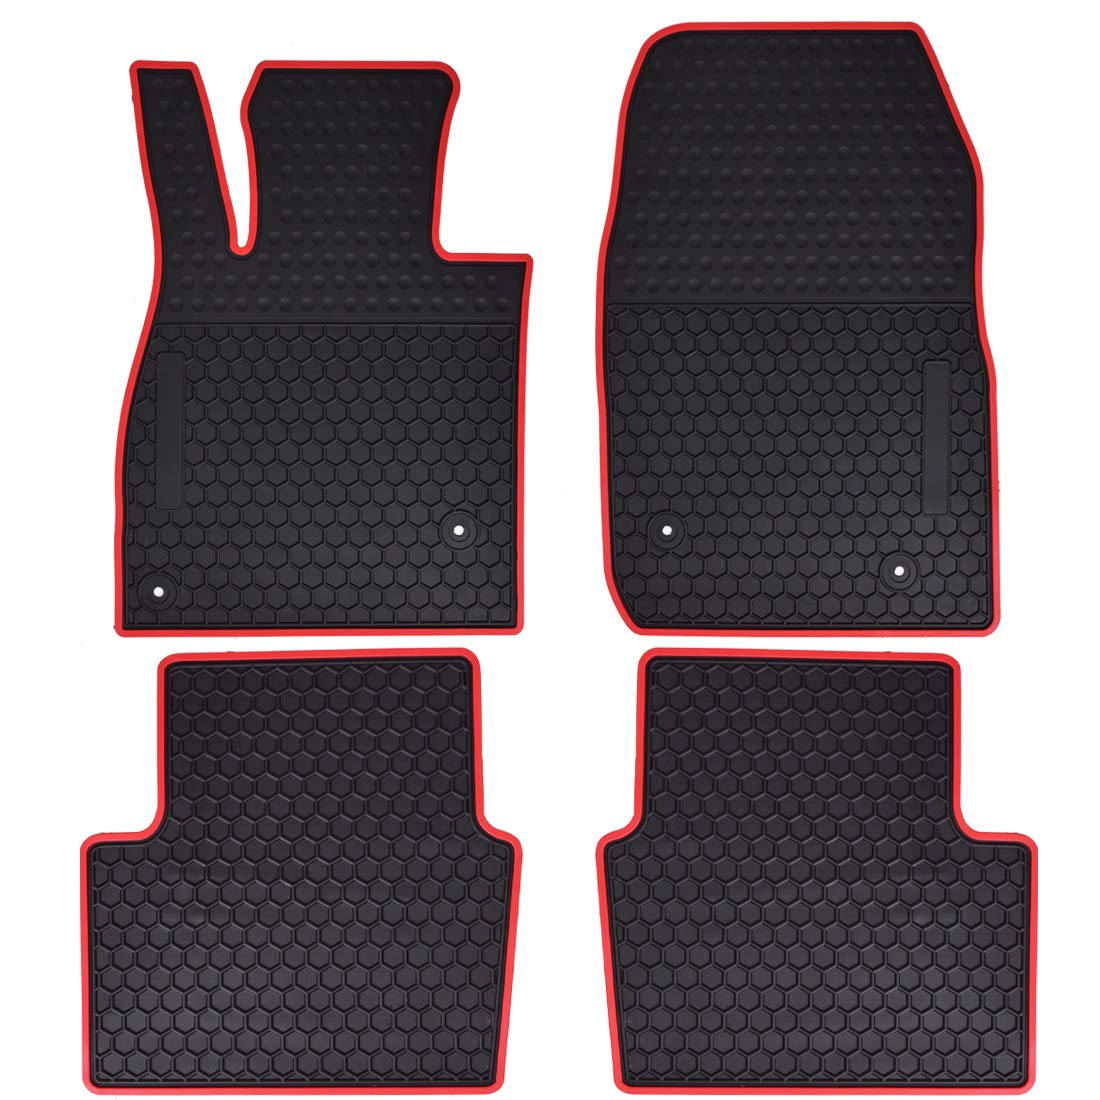 Floor Liners Front and Rear Row Set Red All Weather Megiteller Car Floor Mats Custom Fit for Mazda 3 2014 2015 2016 2017 2018 2019 2020 Odorless Washable Heavy Duty Rubber